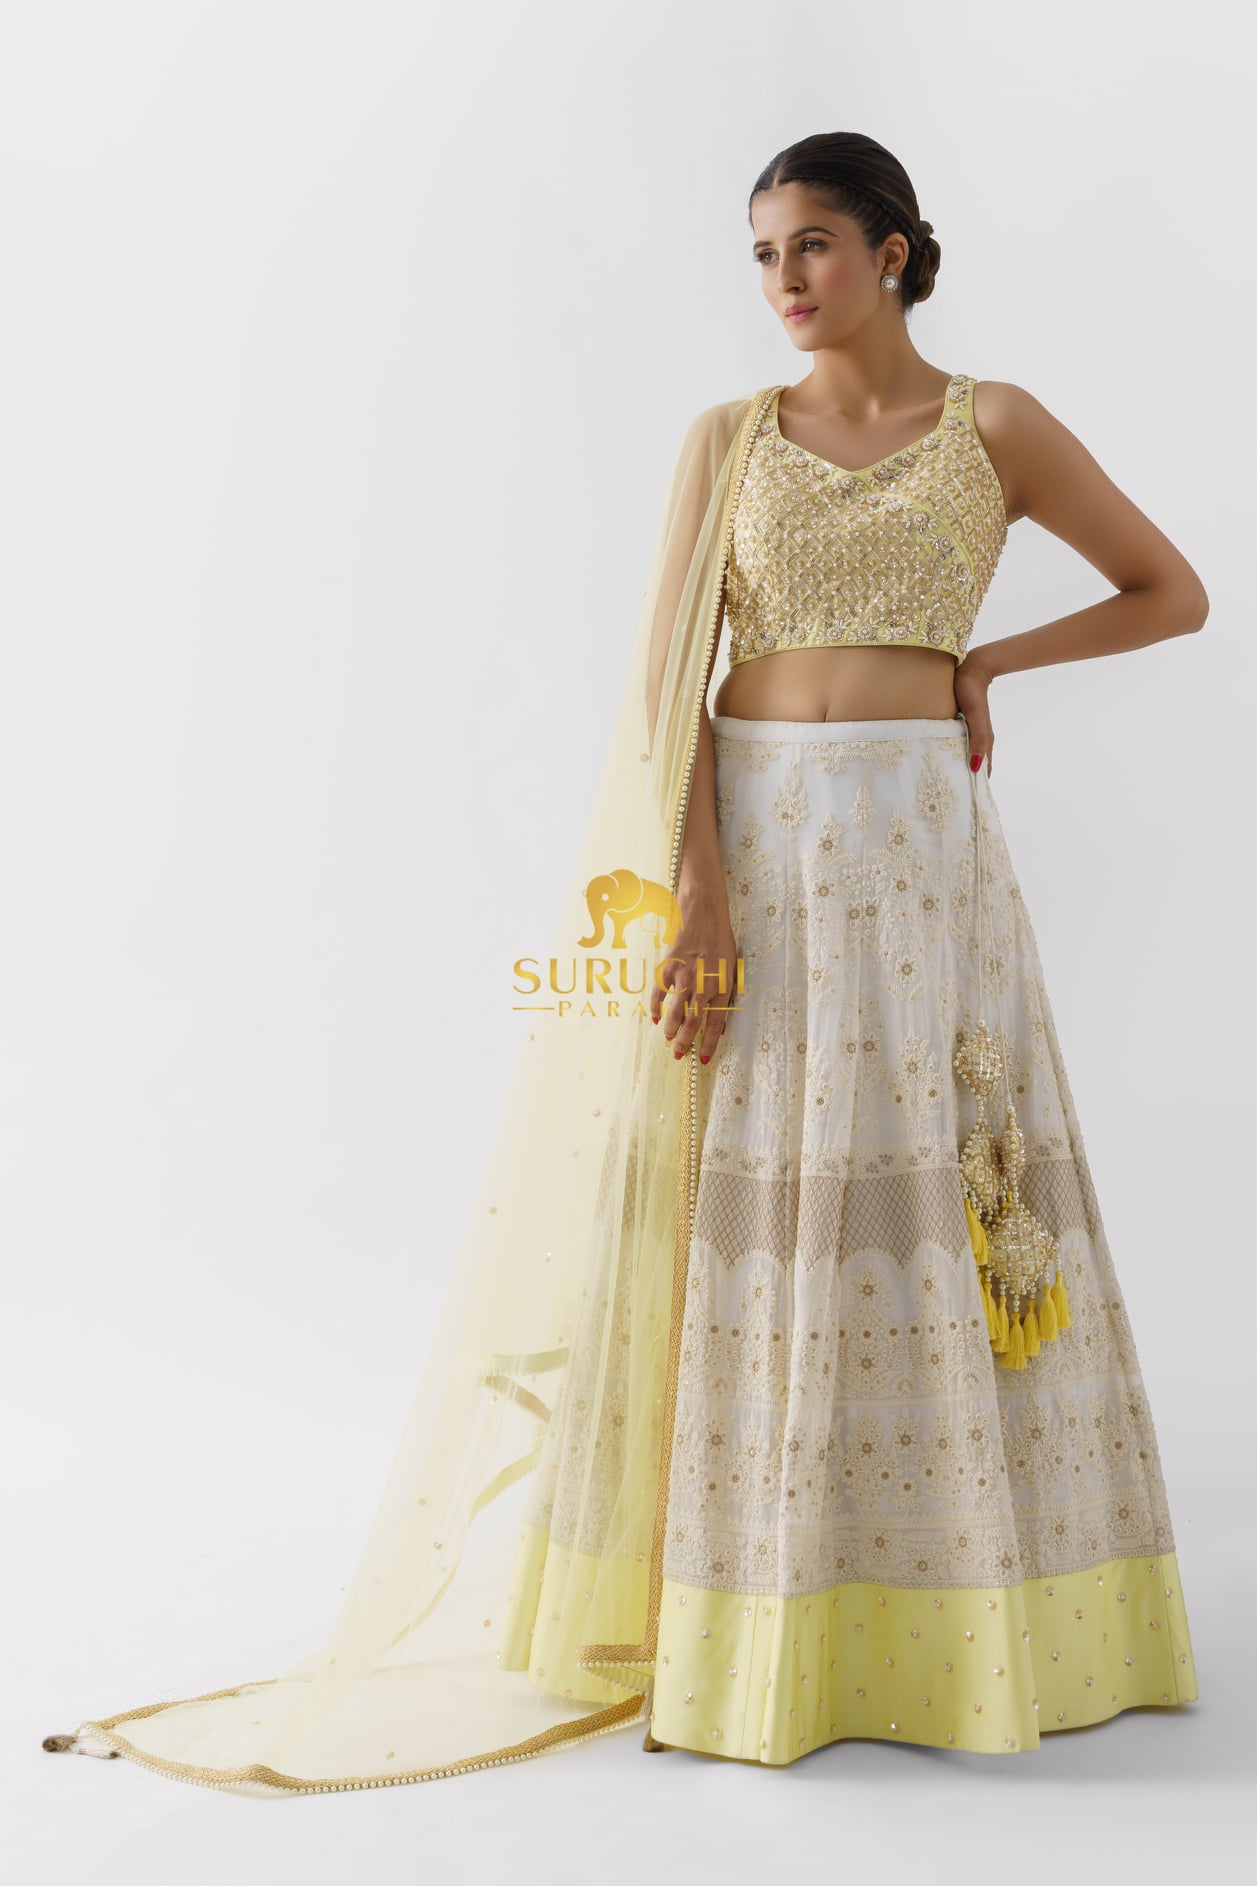 Gorgeous off white color bridal lehenga set with hand embroidery work.  2021-09-21